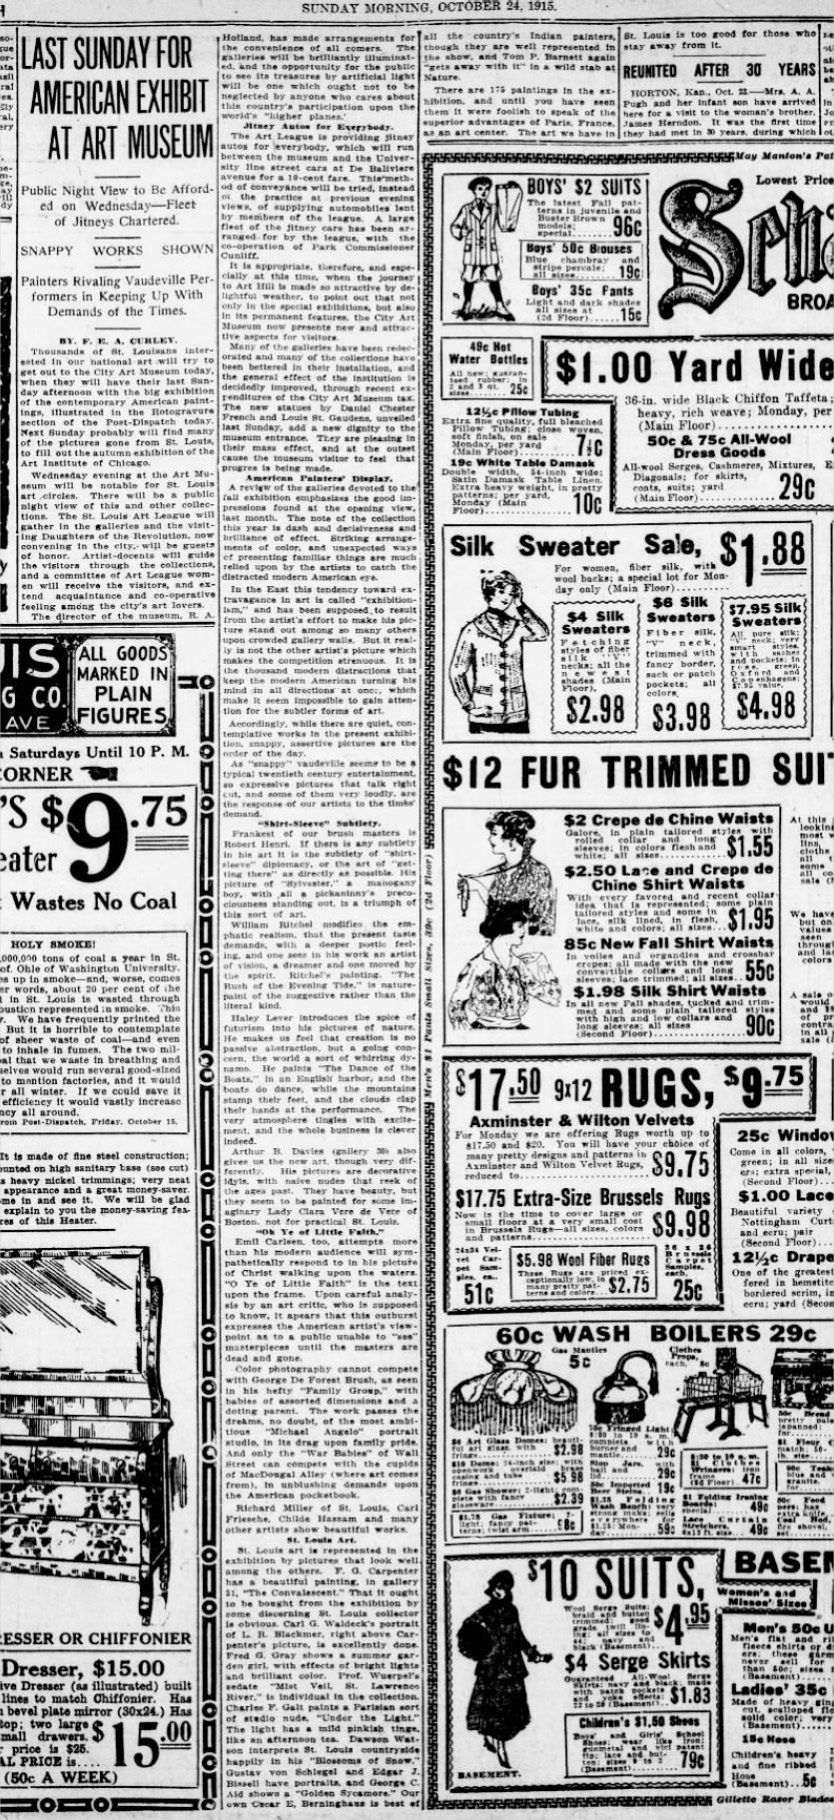 """St. Louis Dispatch, St. Louis, MO, """"Last Sunday for American Exhibit at Art Museum"""", October 24, 1915, Sunday Night Edition, Page 16"""